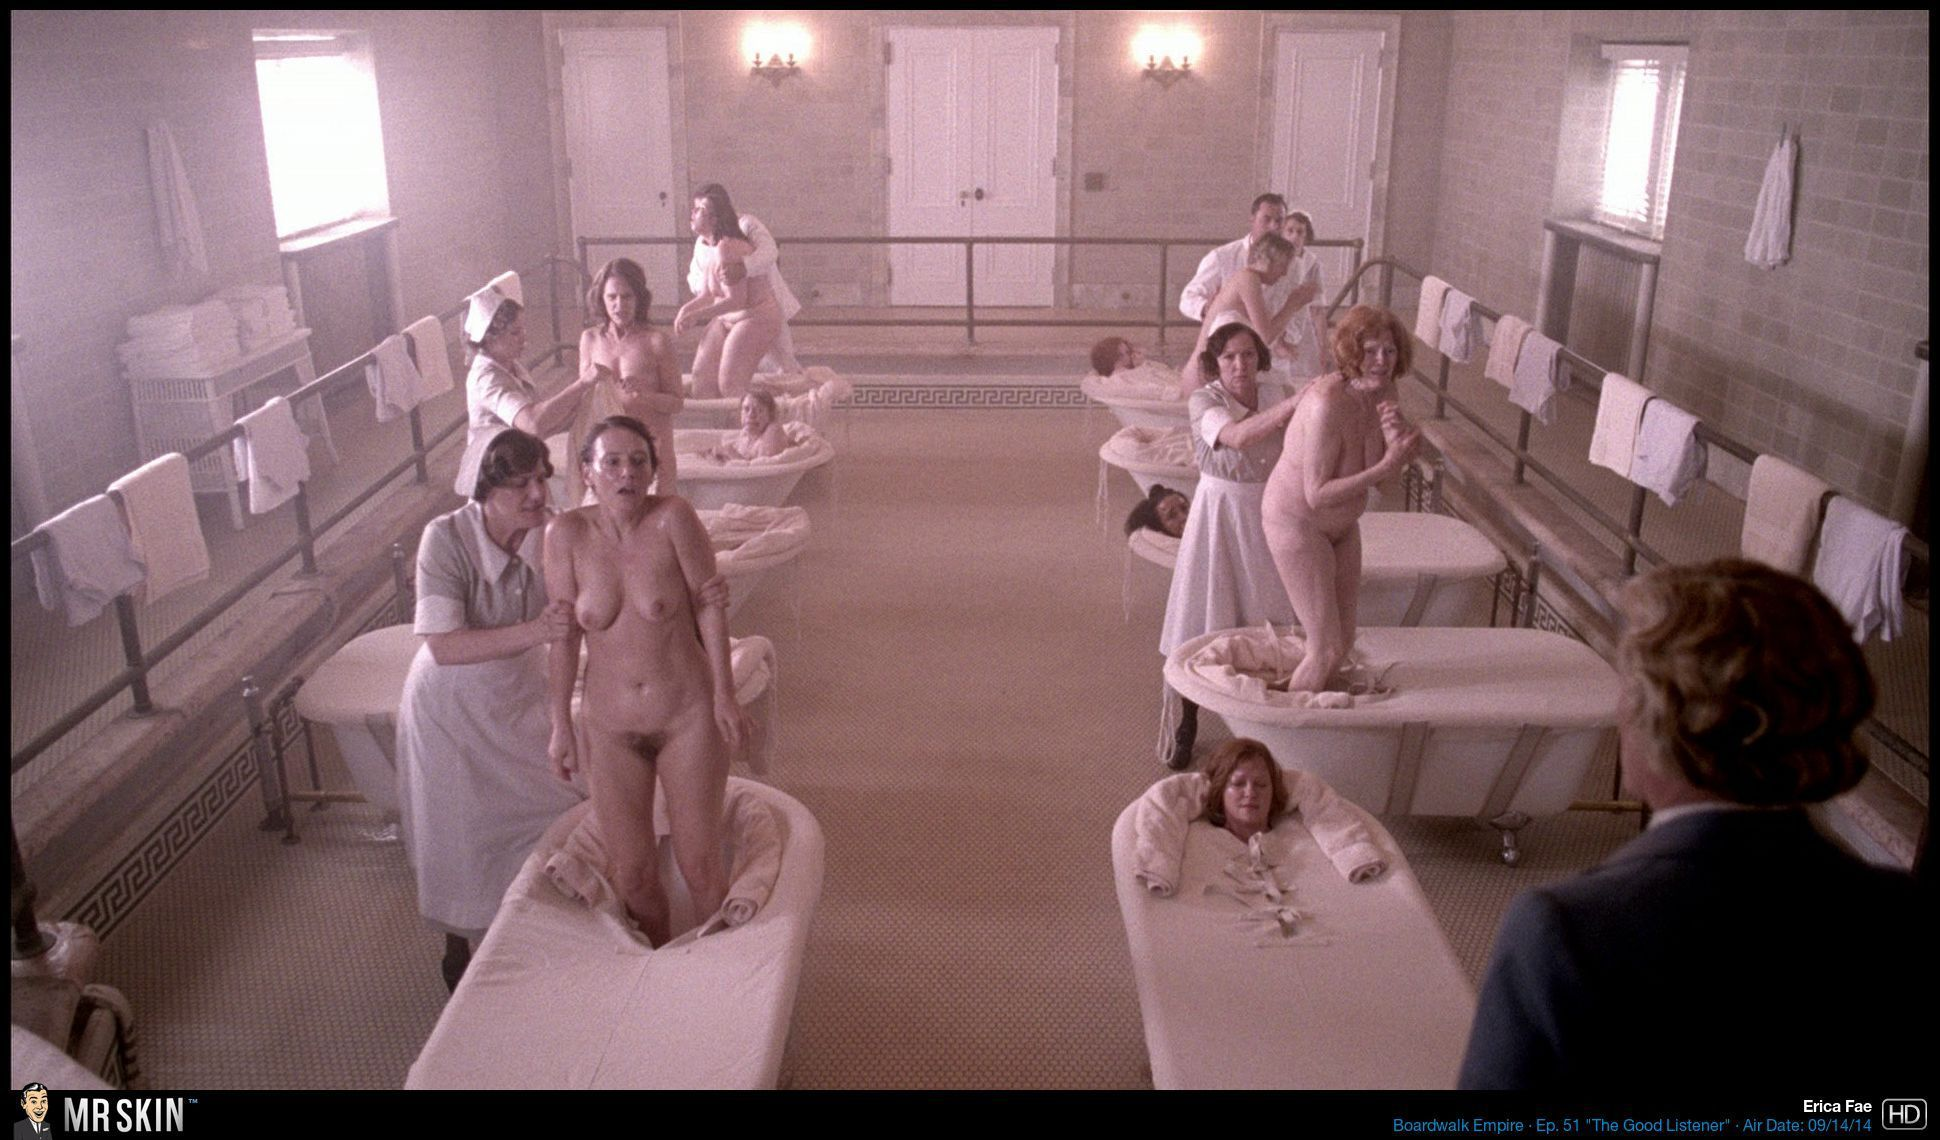 Gretchen mol erica fae bethany kay in boardwalk empire 2 - 3 part 1